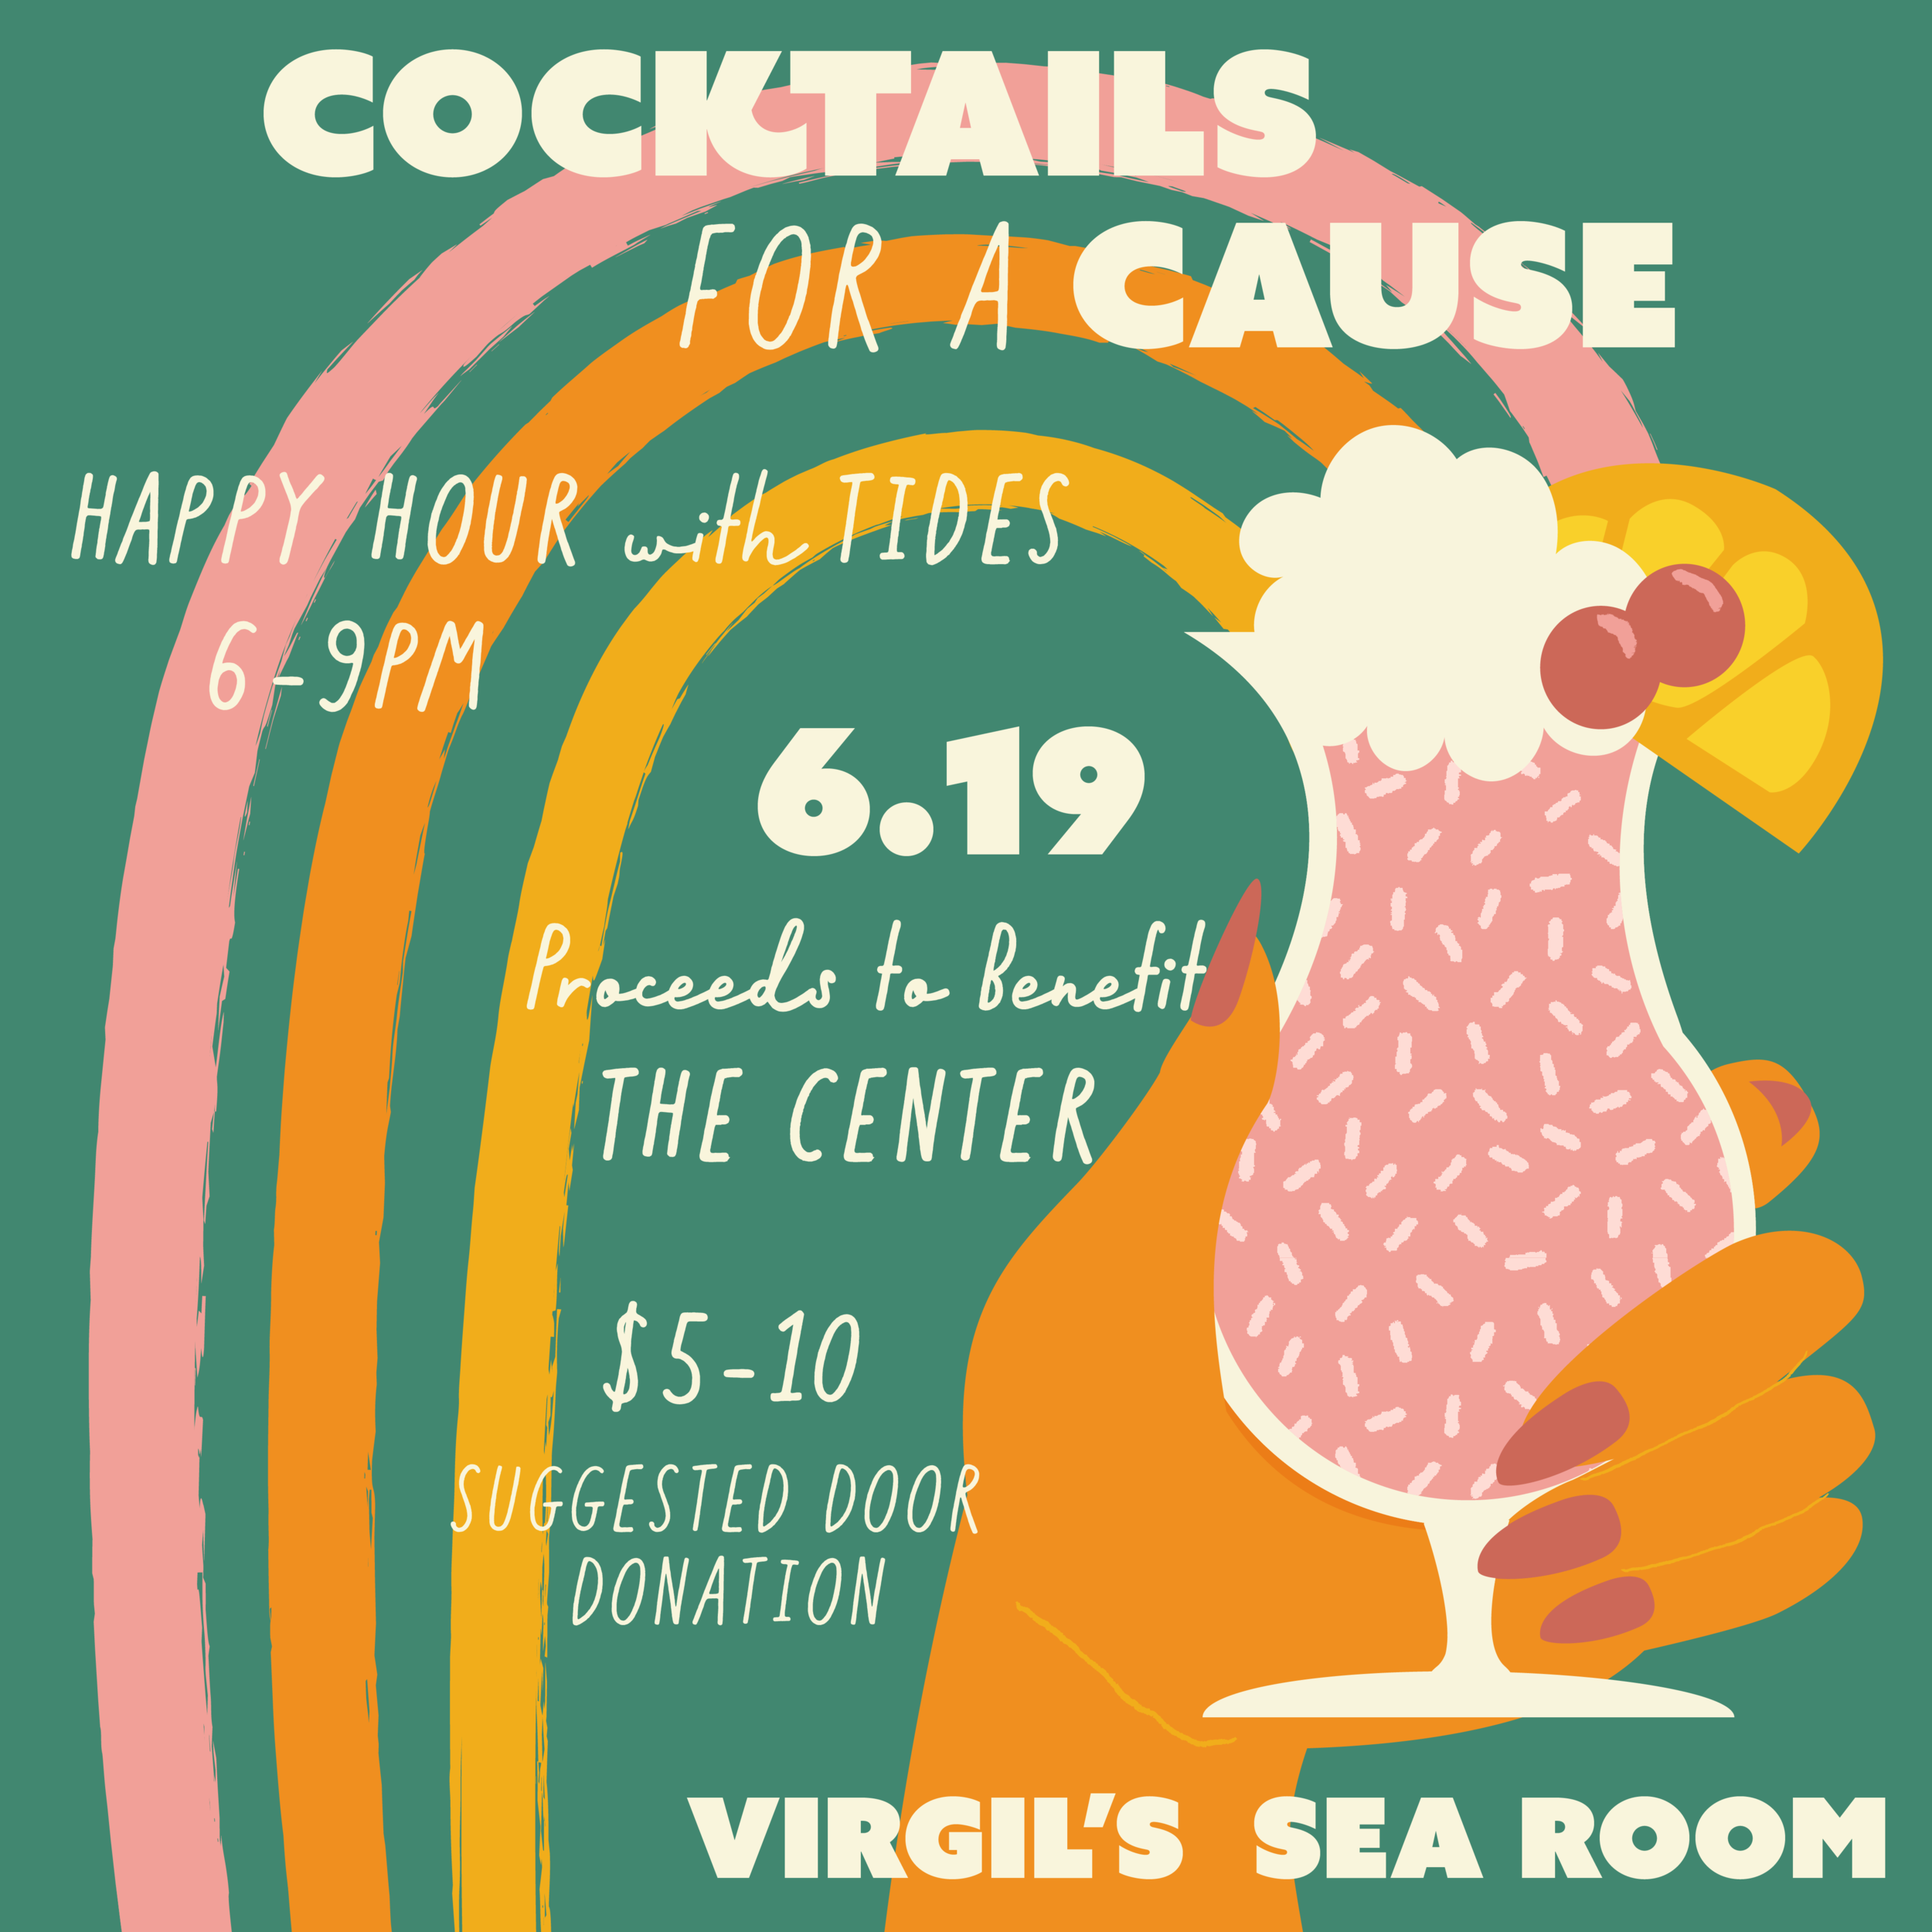 Cocktails4acause_June-01.png